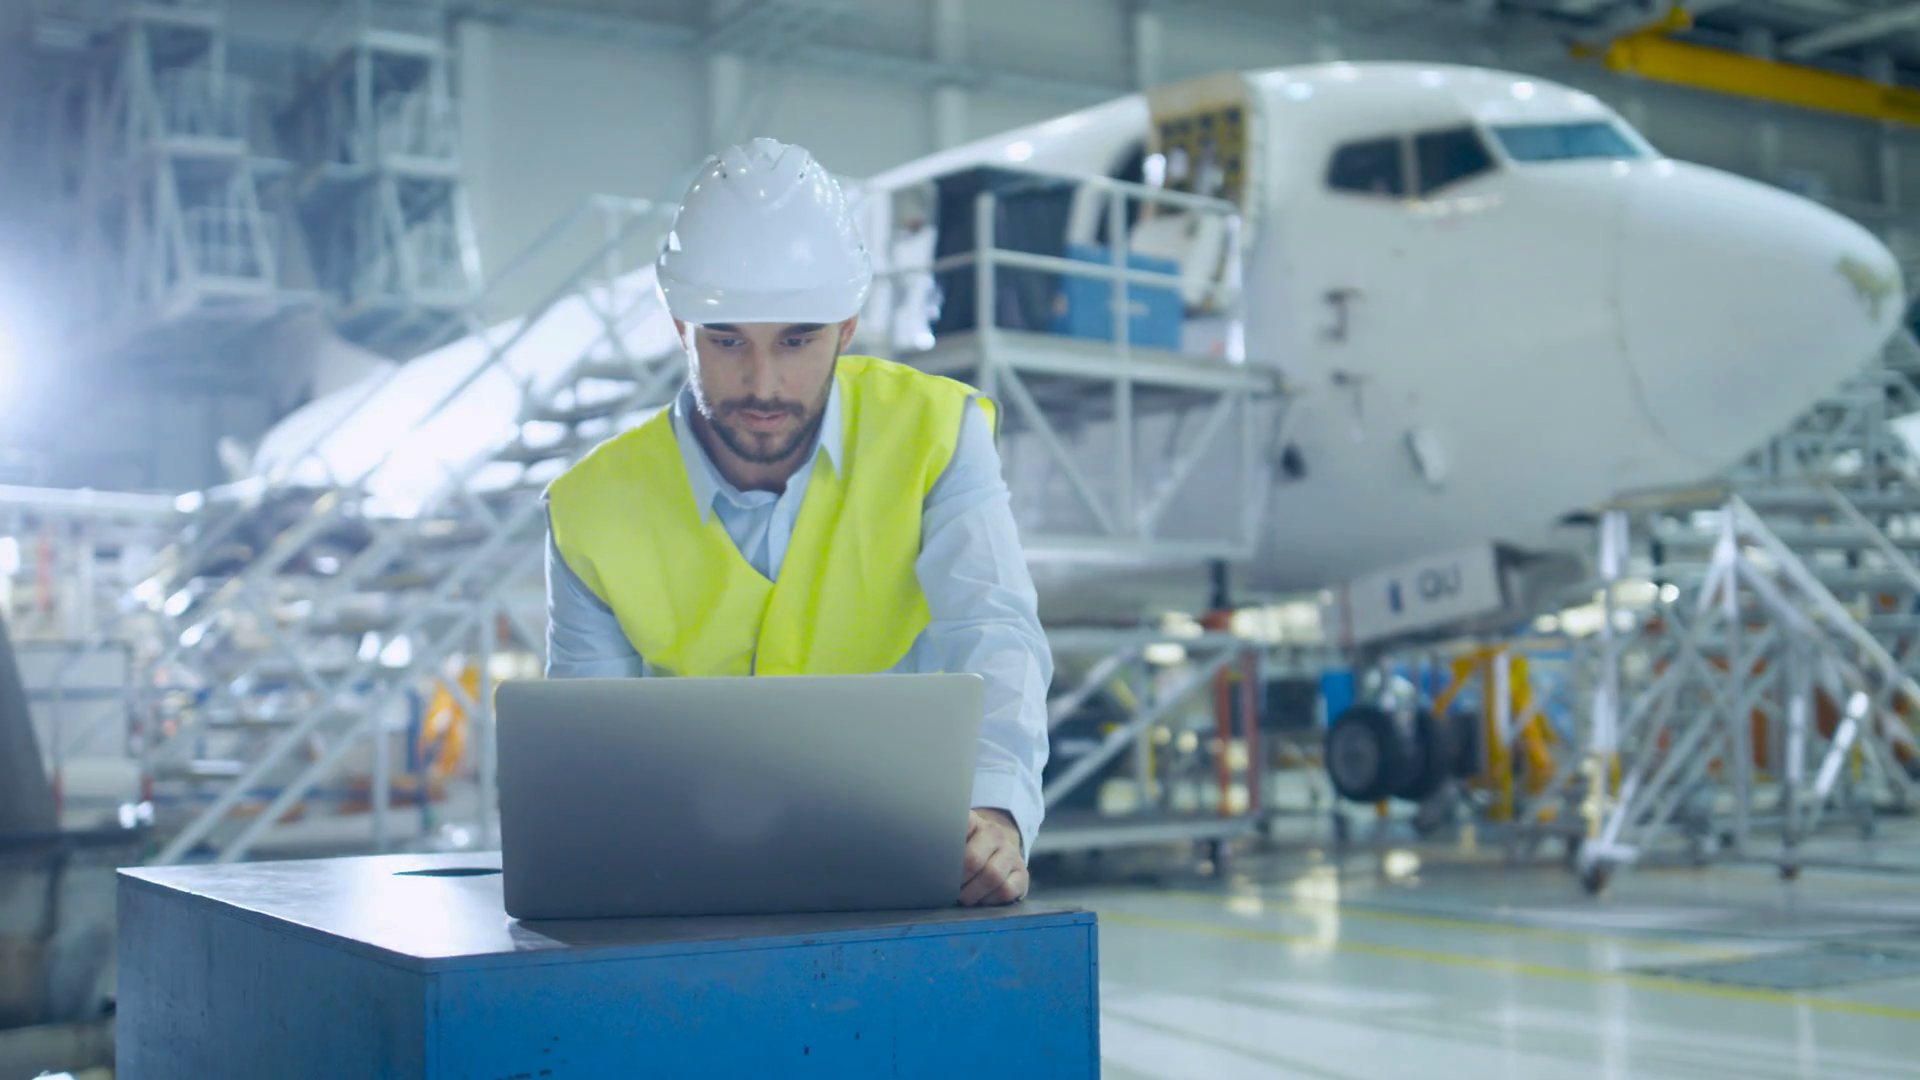 16_77_35_engineer_in_safety_vest_next_to_computer_in_aircraft_maintenance_t_sq-o3ler_thumbnail-full01.png